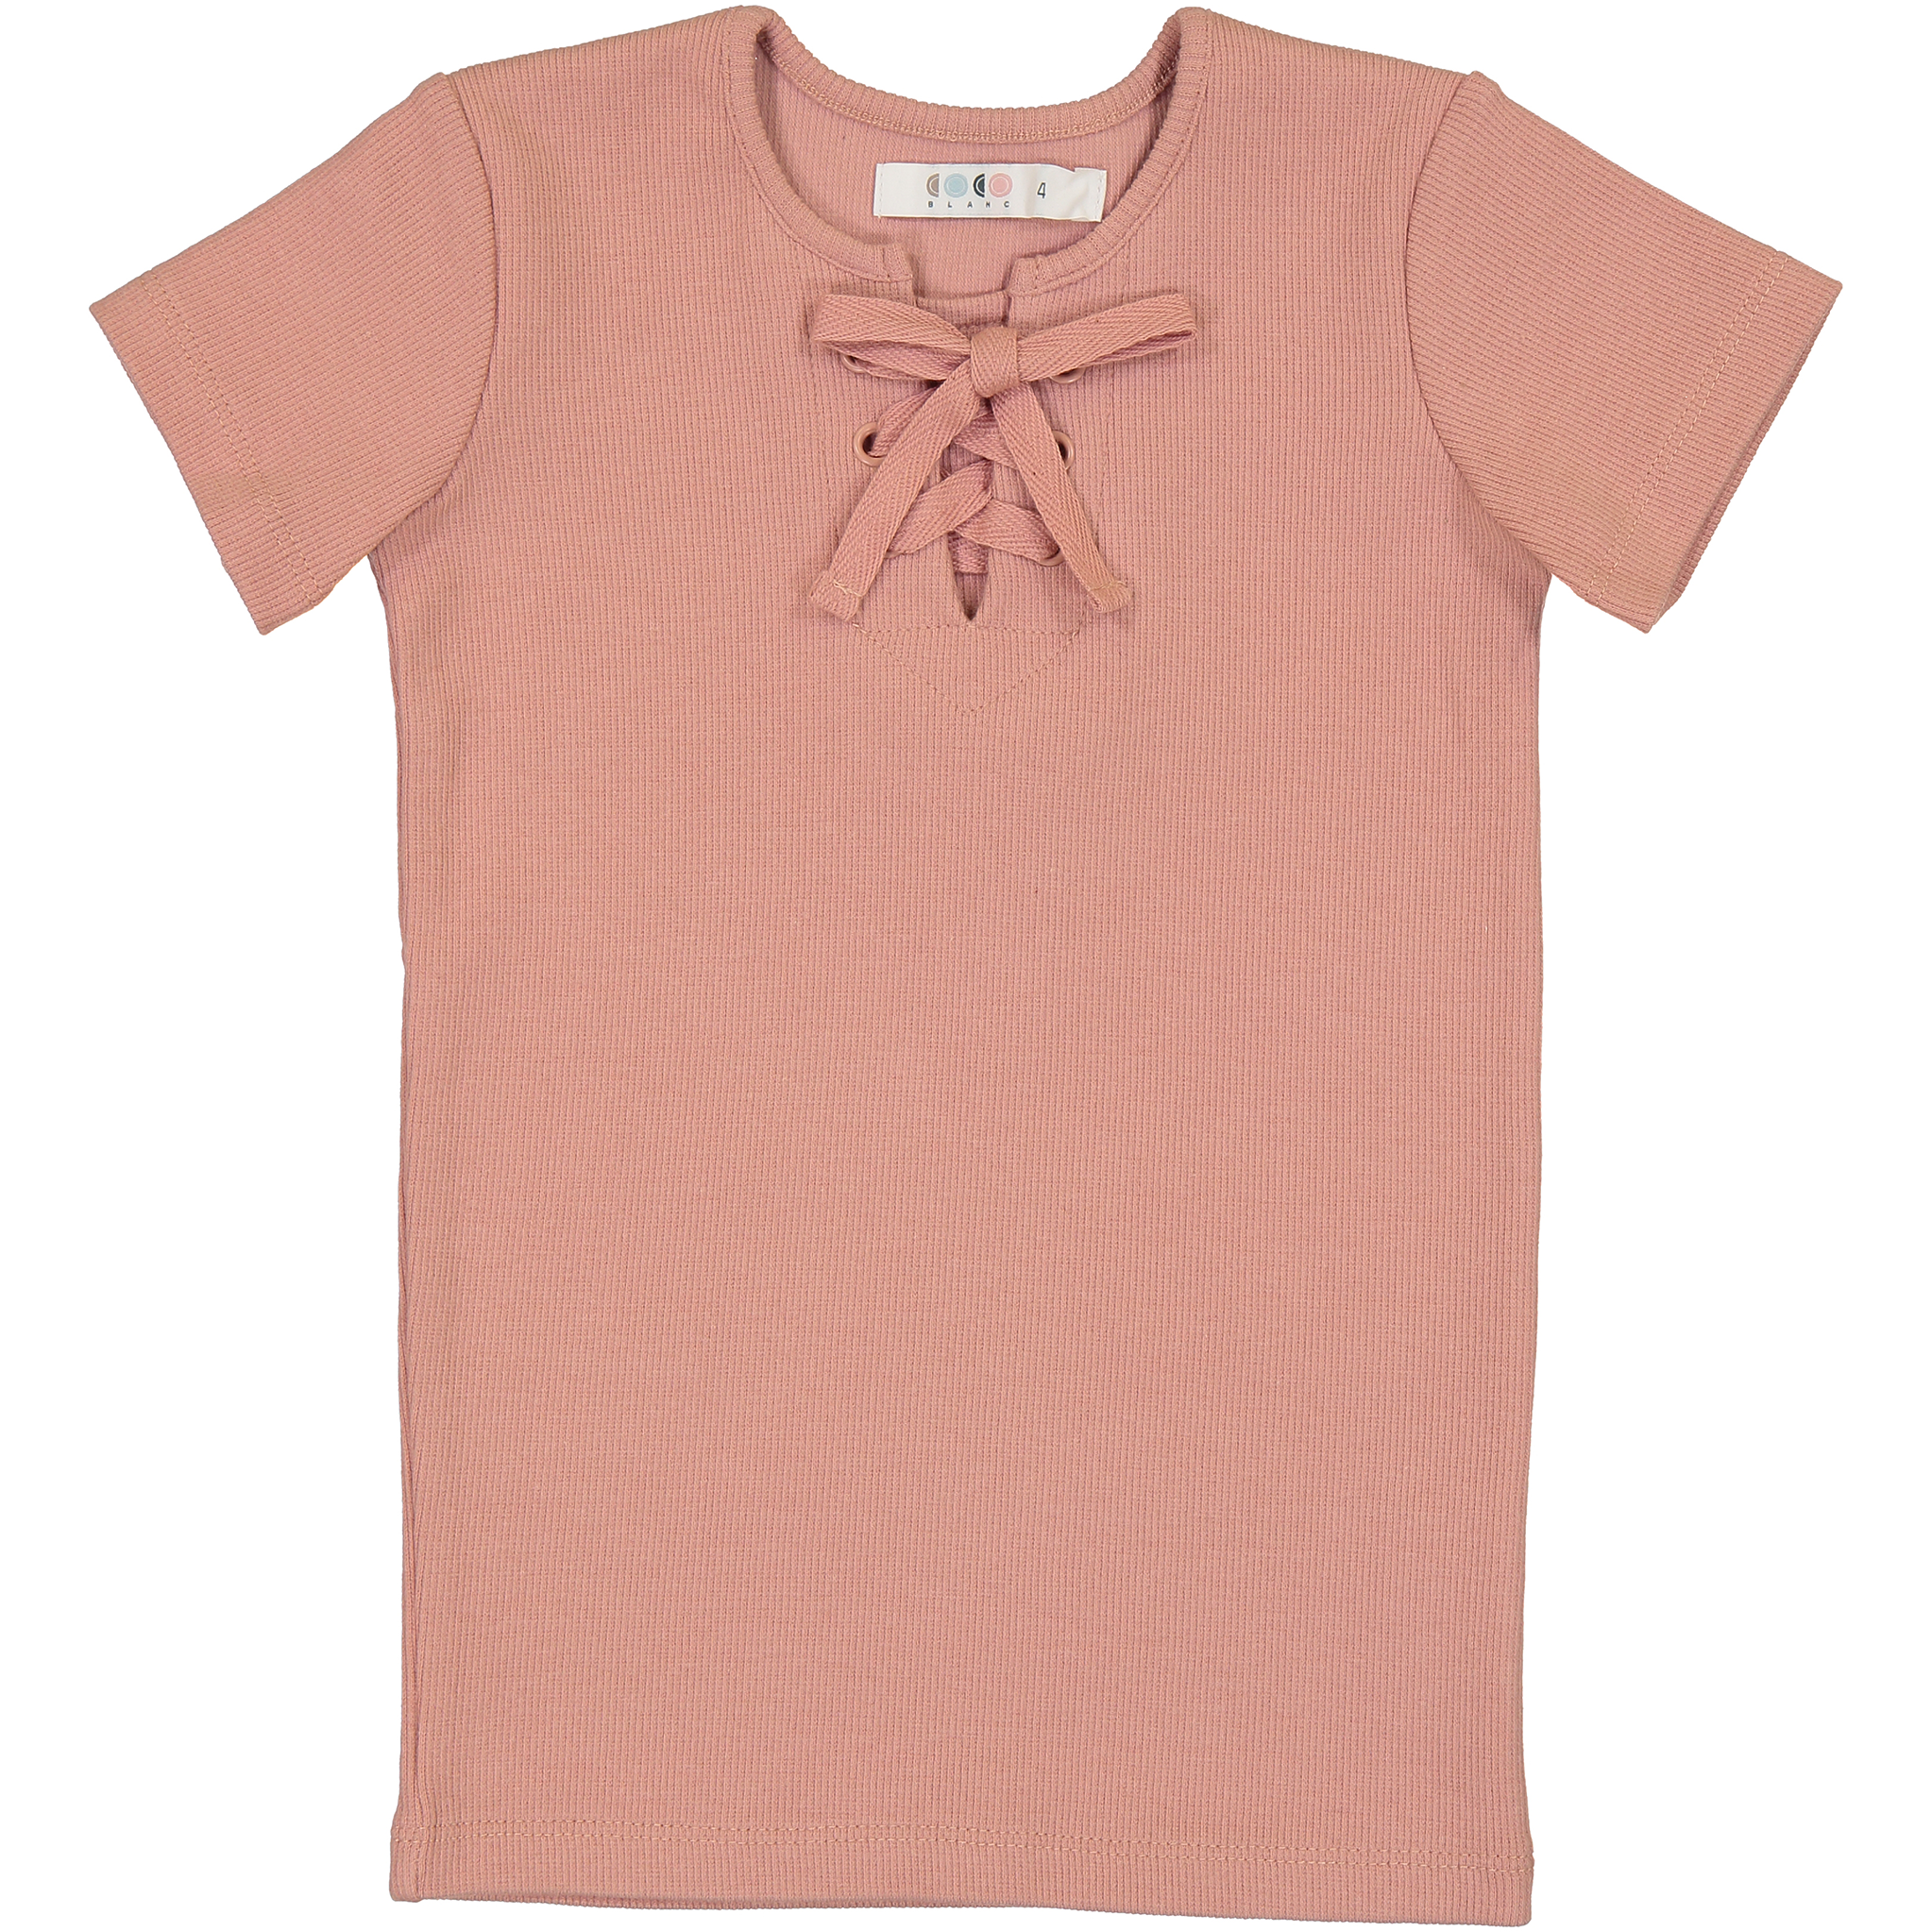 Coco Blanc Blush Pink Ribbed Short Sleeve Cross Tee